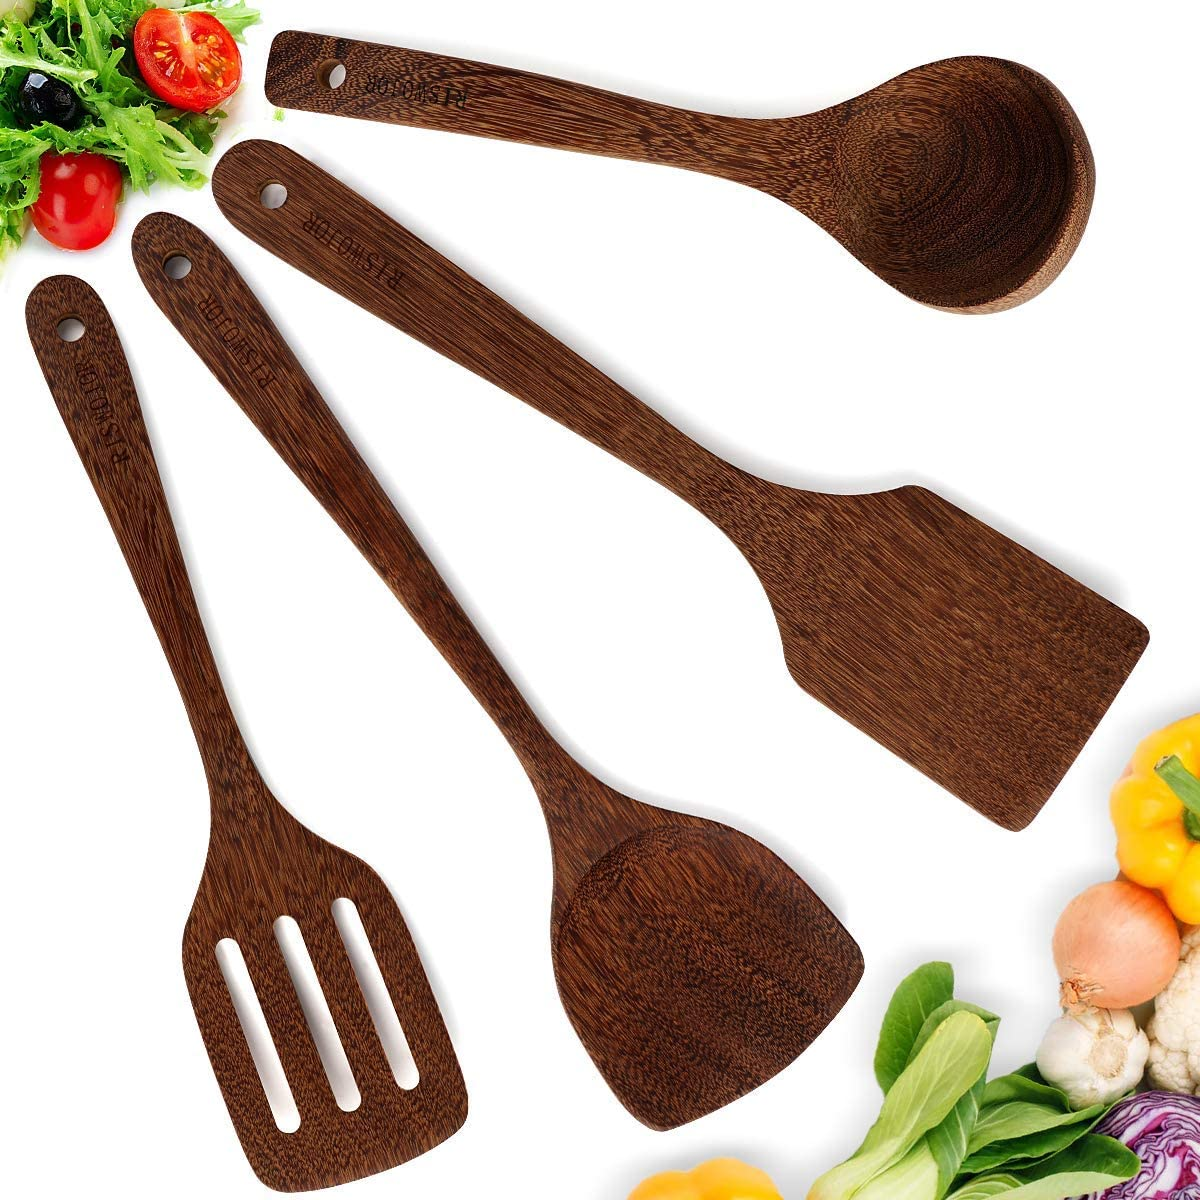 RISWOJOR Wooden Cooking Utensils,Wooden Kitchen Utensil Set of Unpainted and Wax-Free Handmade by Natural Wenge Wood,Wooden Utensils Includes Wooden Spatula Set,Wooden Spoons for Cooking